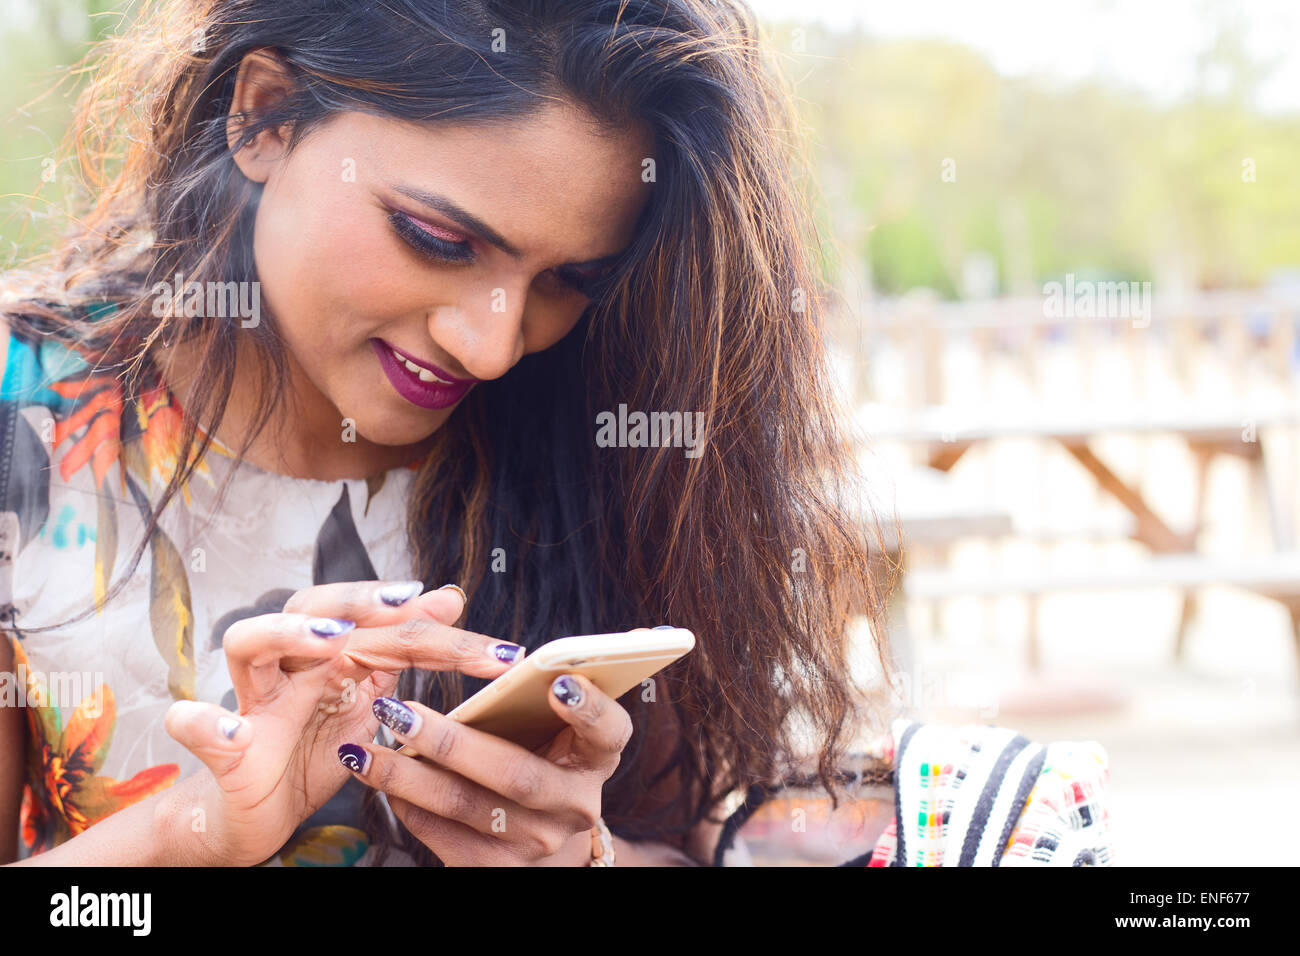 young woman sending a text message - Stock Image